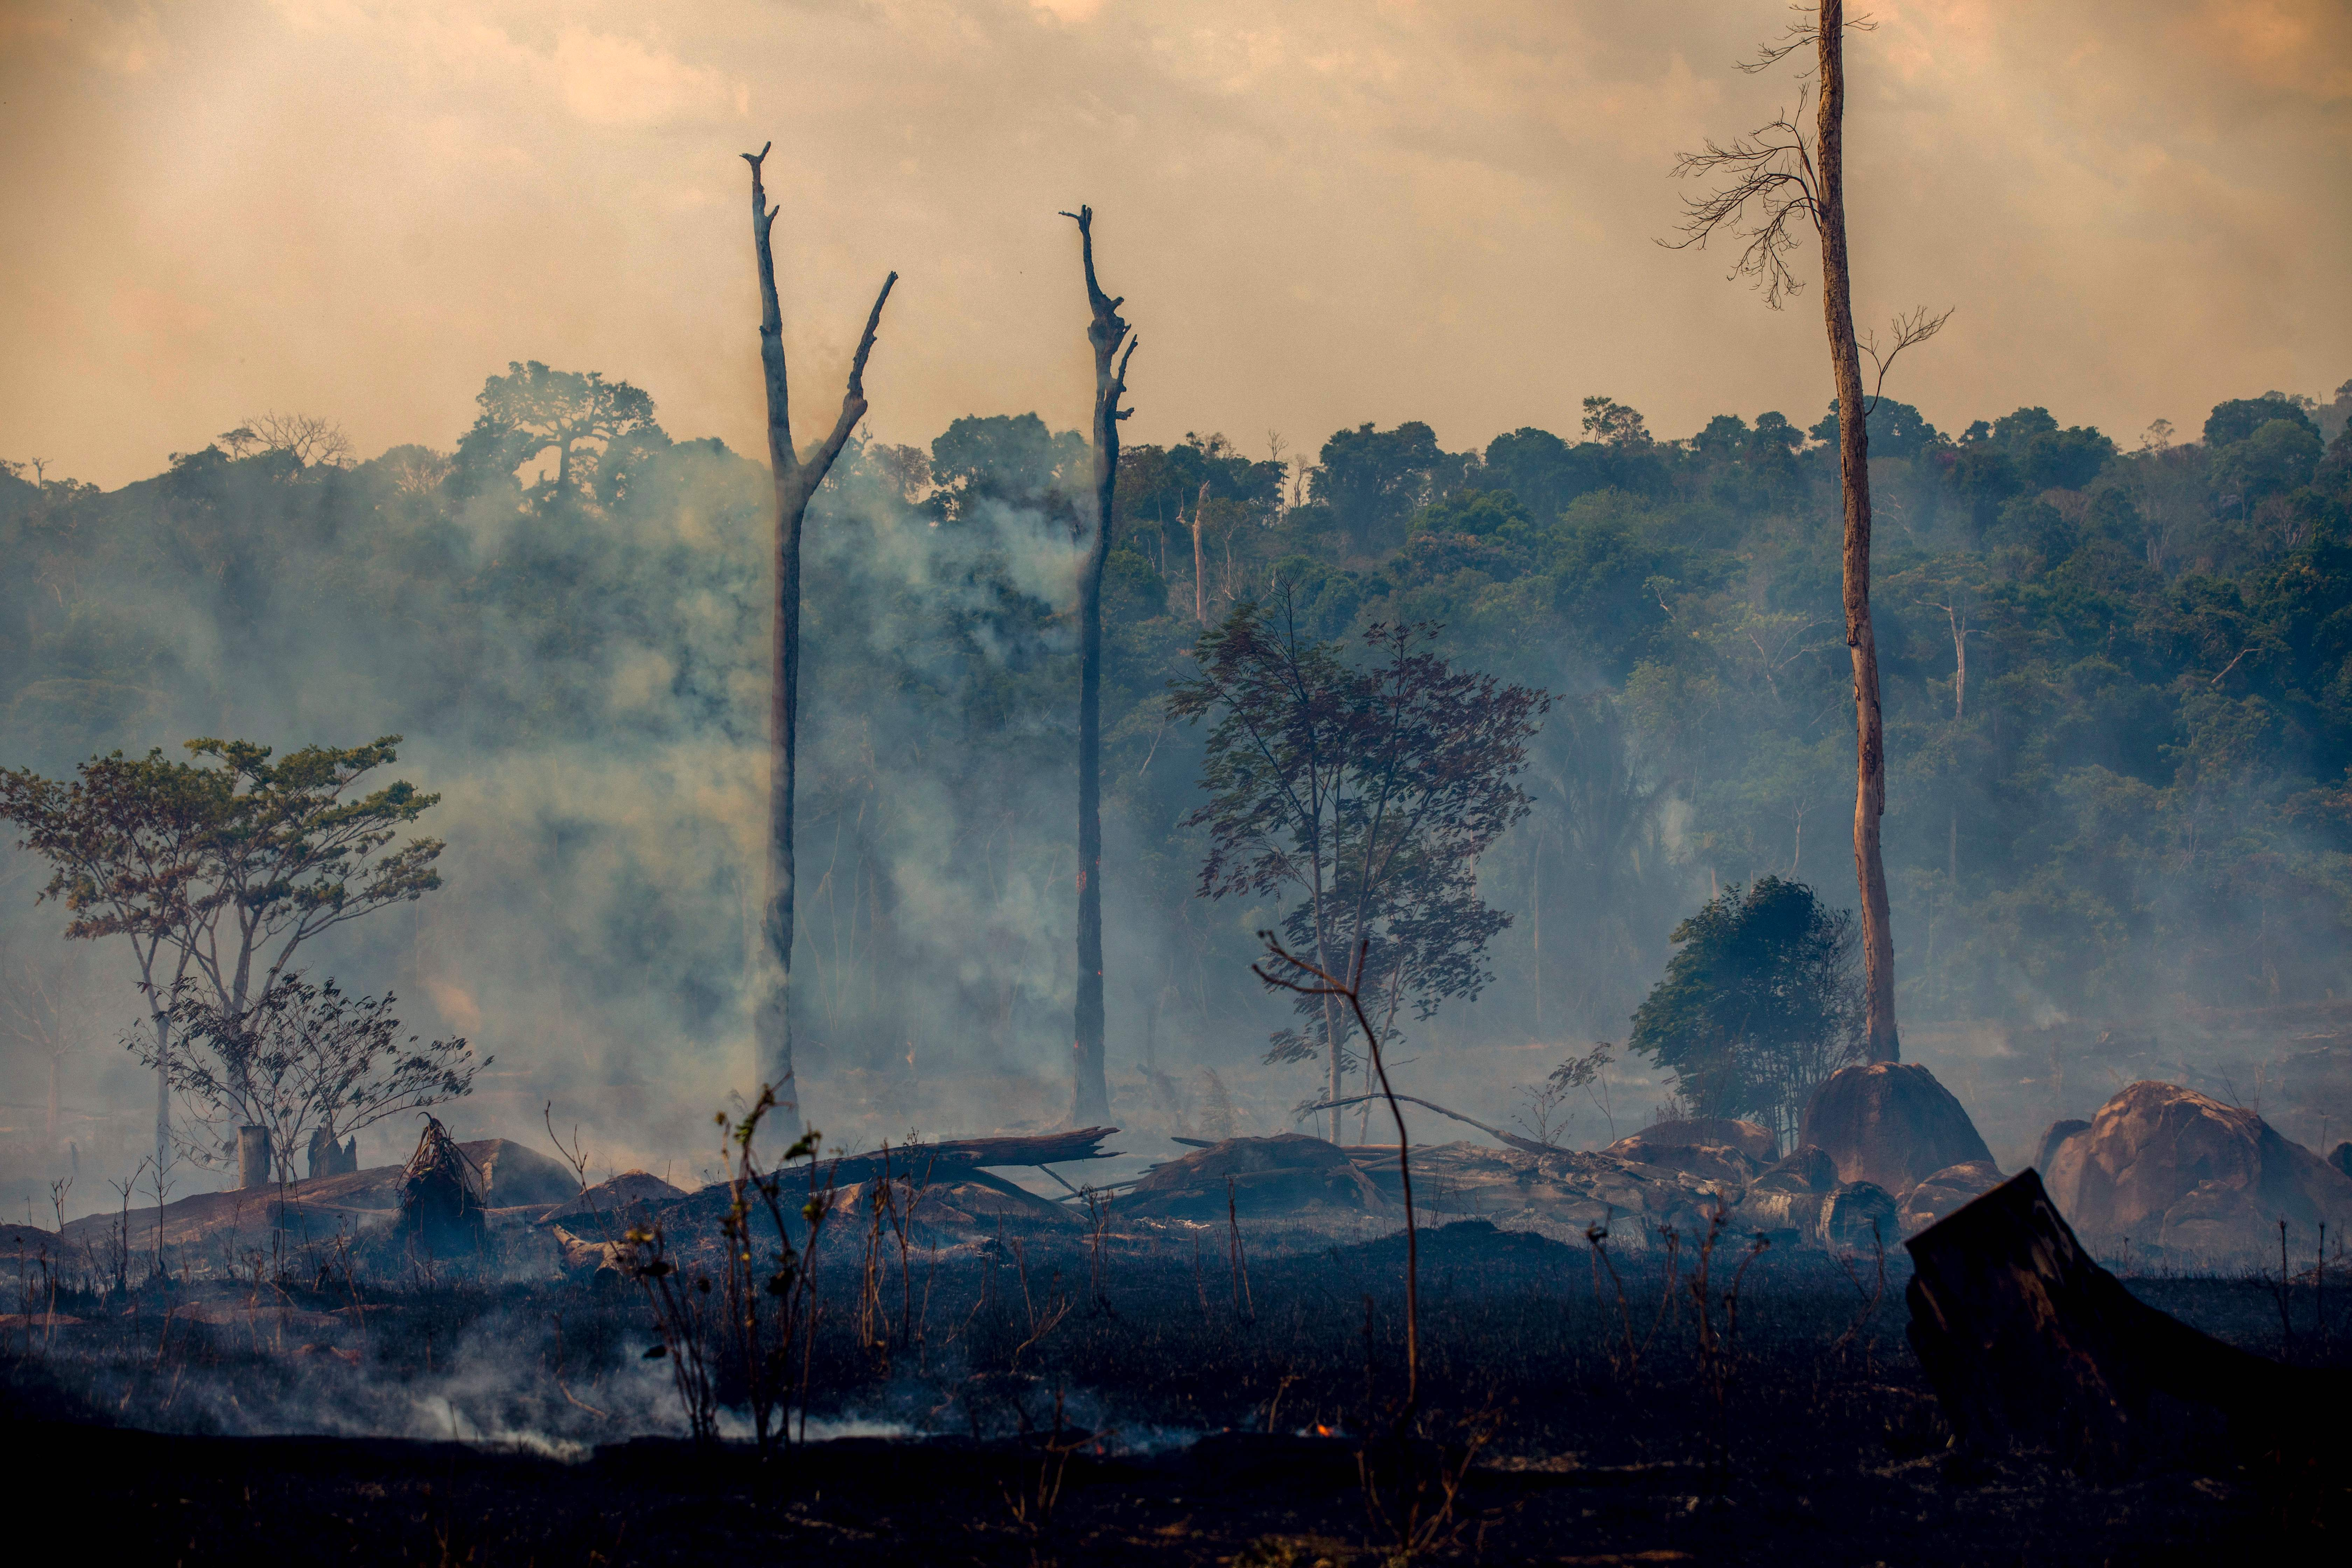 Why it's been so lucrative to destroy the Amazon rainforest